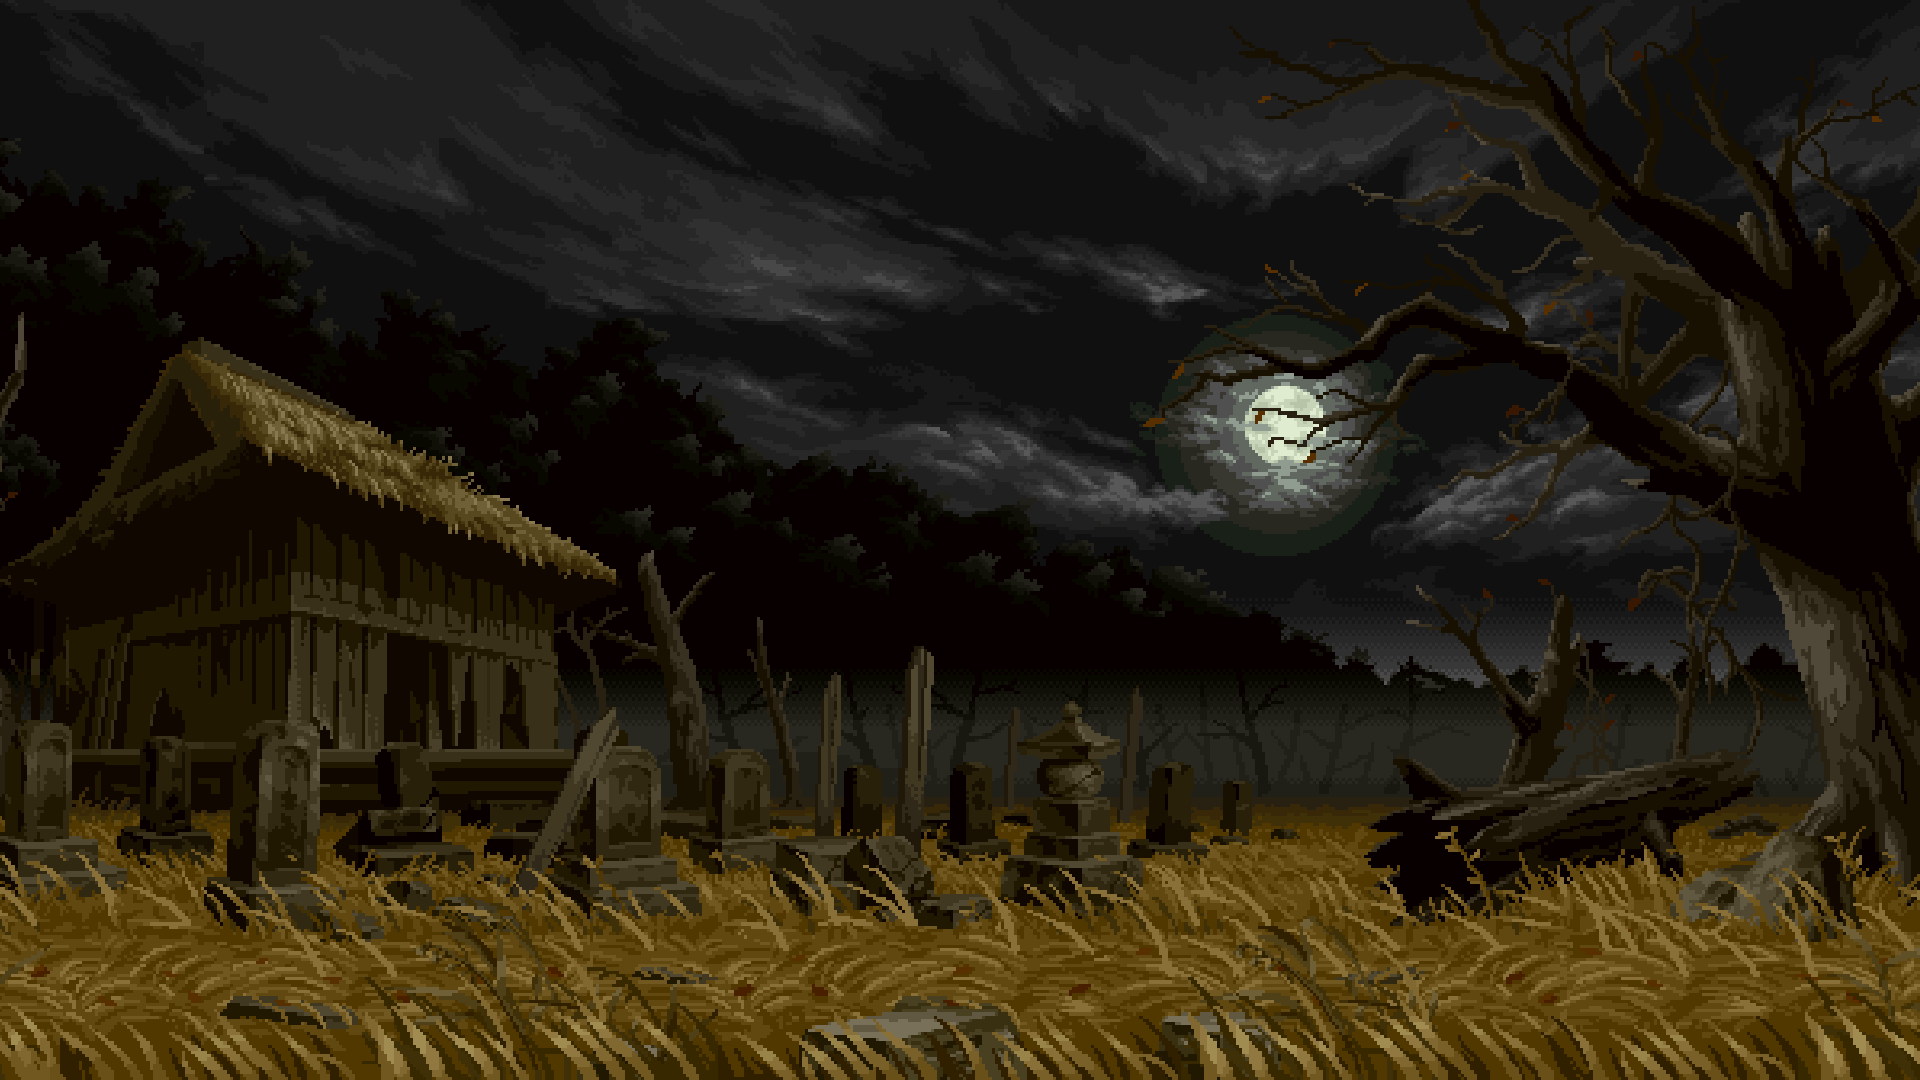 General 1920x1080 creepy night graveyards pixel art pixelated Moon grave trees grain cabin pixels dead trees branch